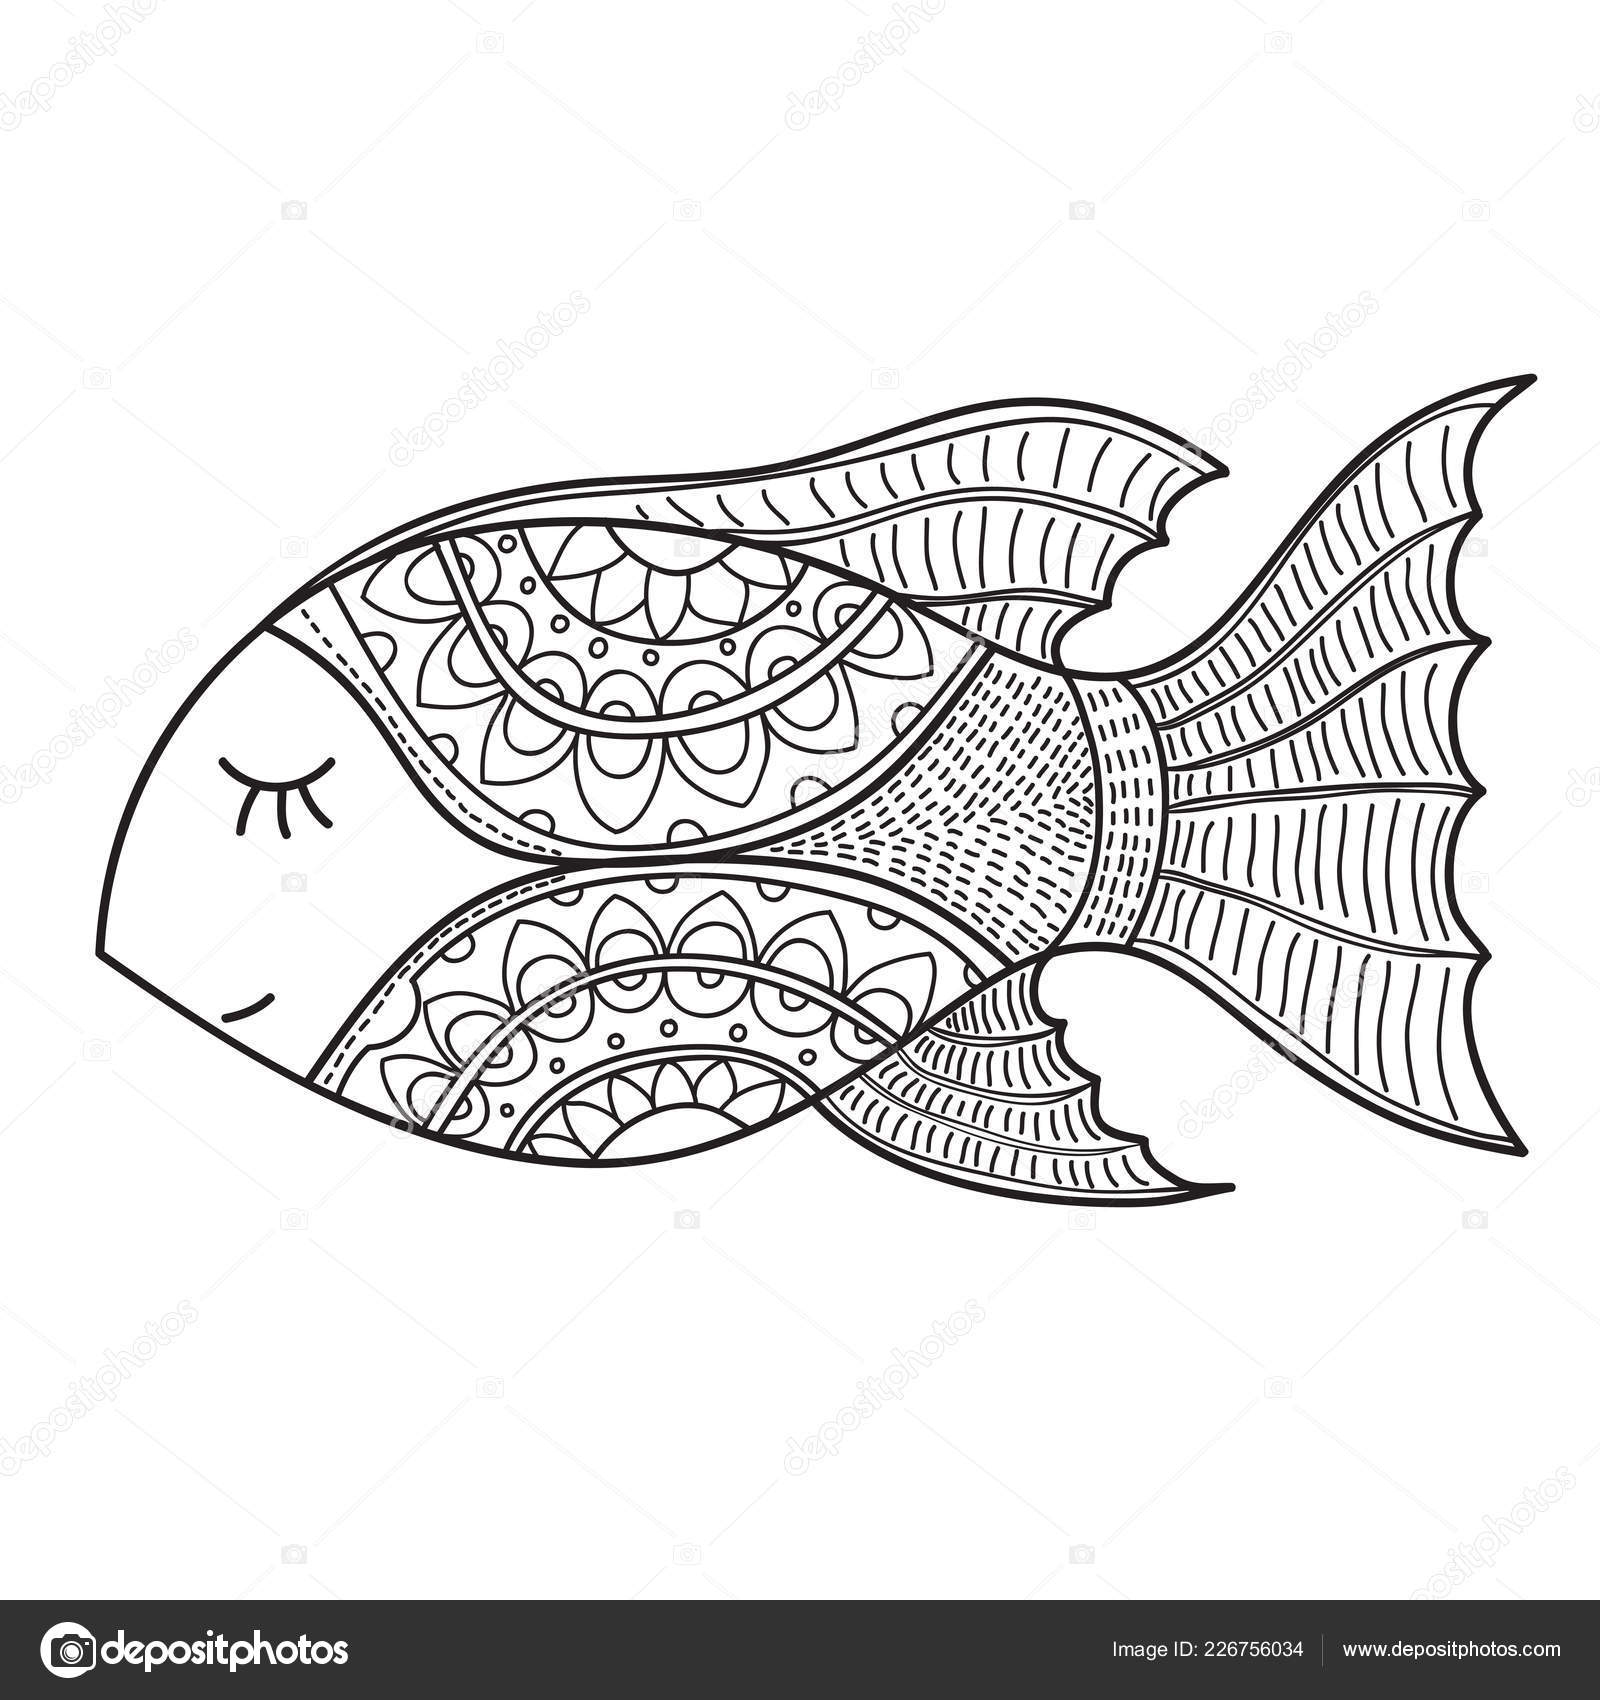 - Outline Fish Drawing Decorative Fish Drawing Abstract Ornaments